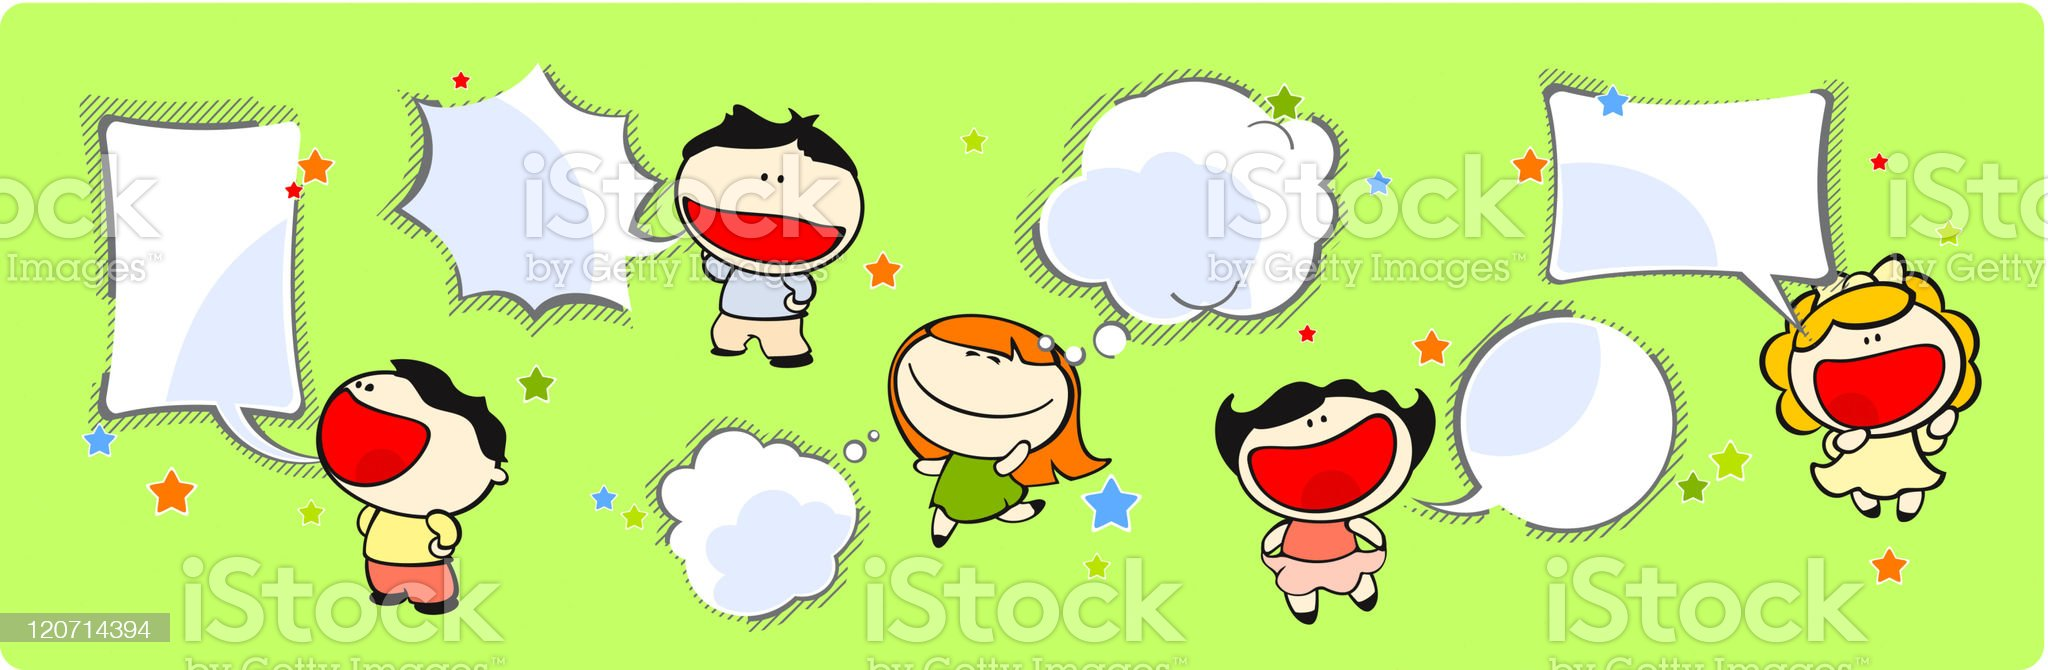 Funny kids - speech and thinking bubbles royalty-free stock vector art